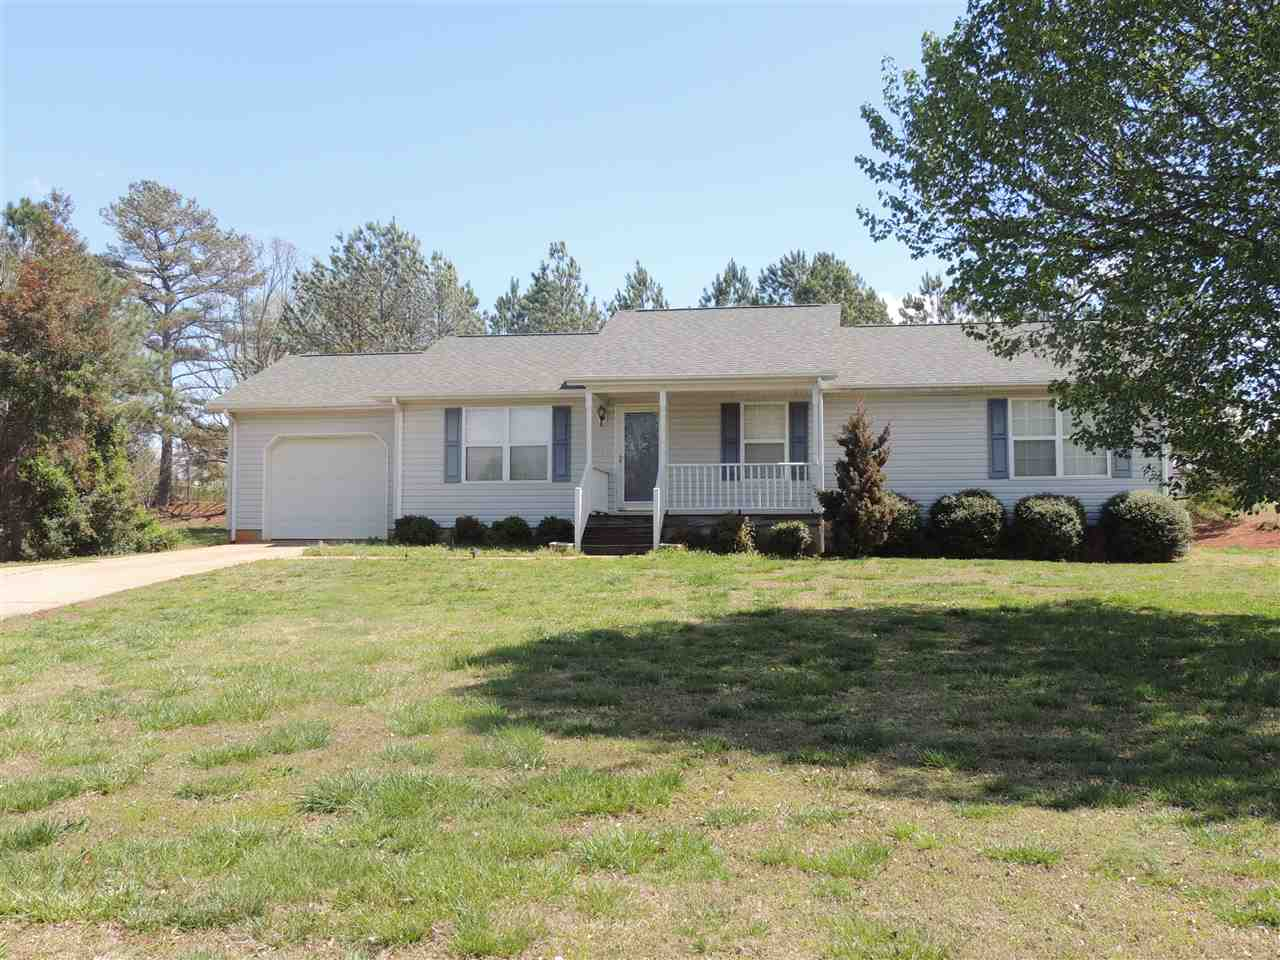 141 Eastview Dr., Bostic, NC 28018